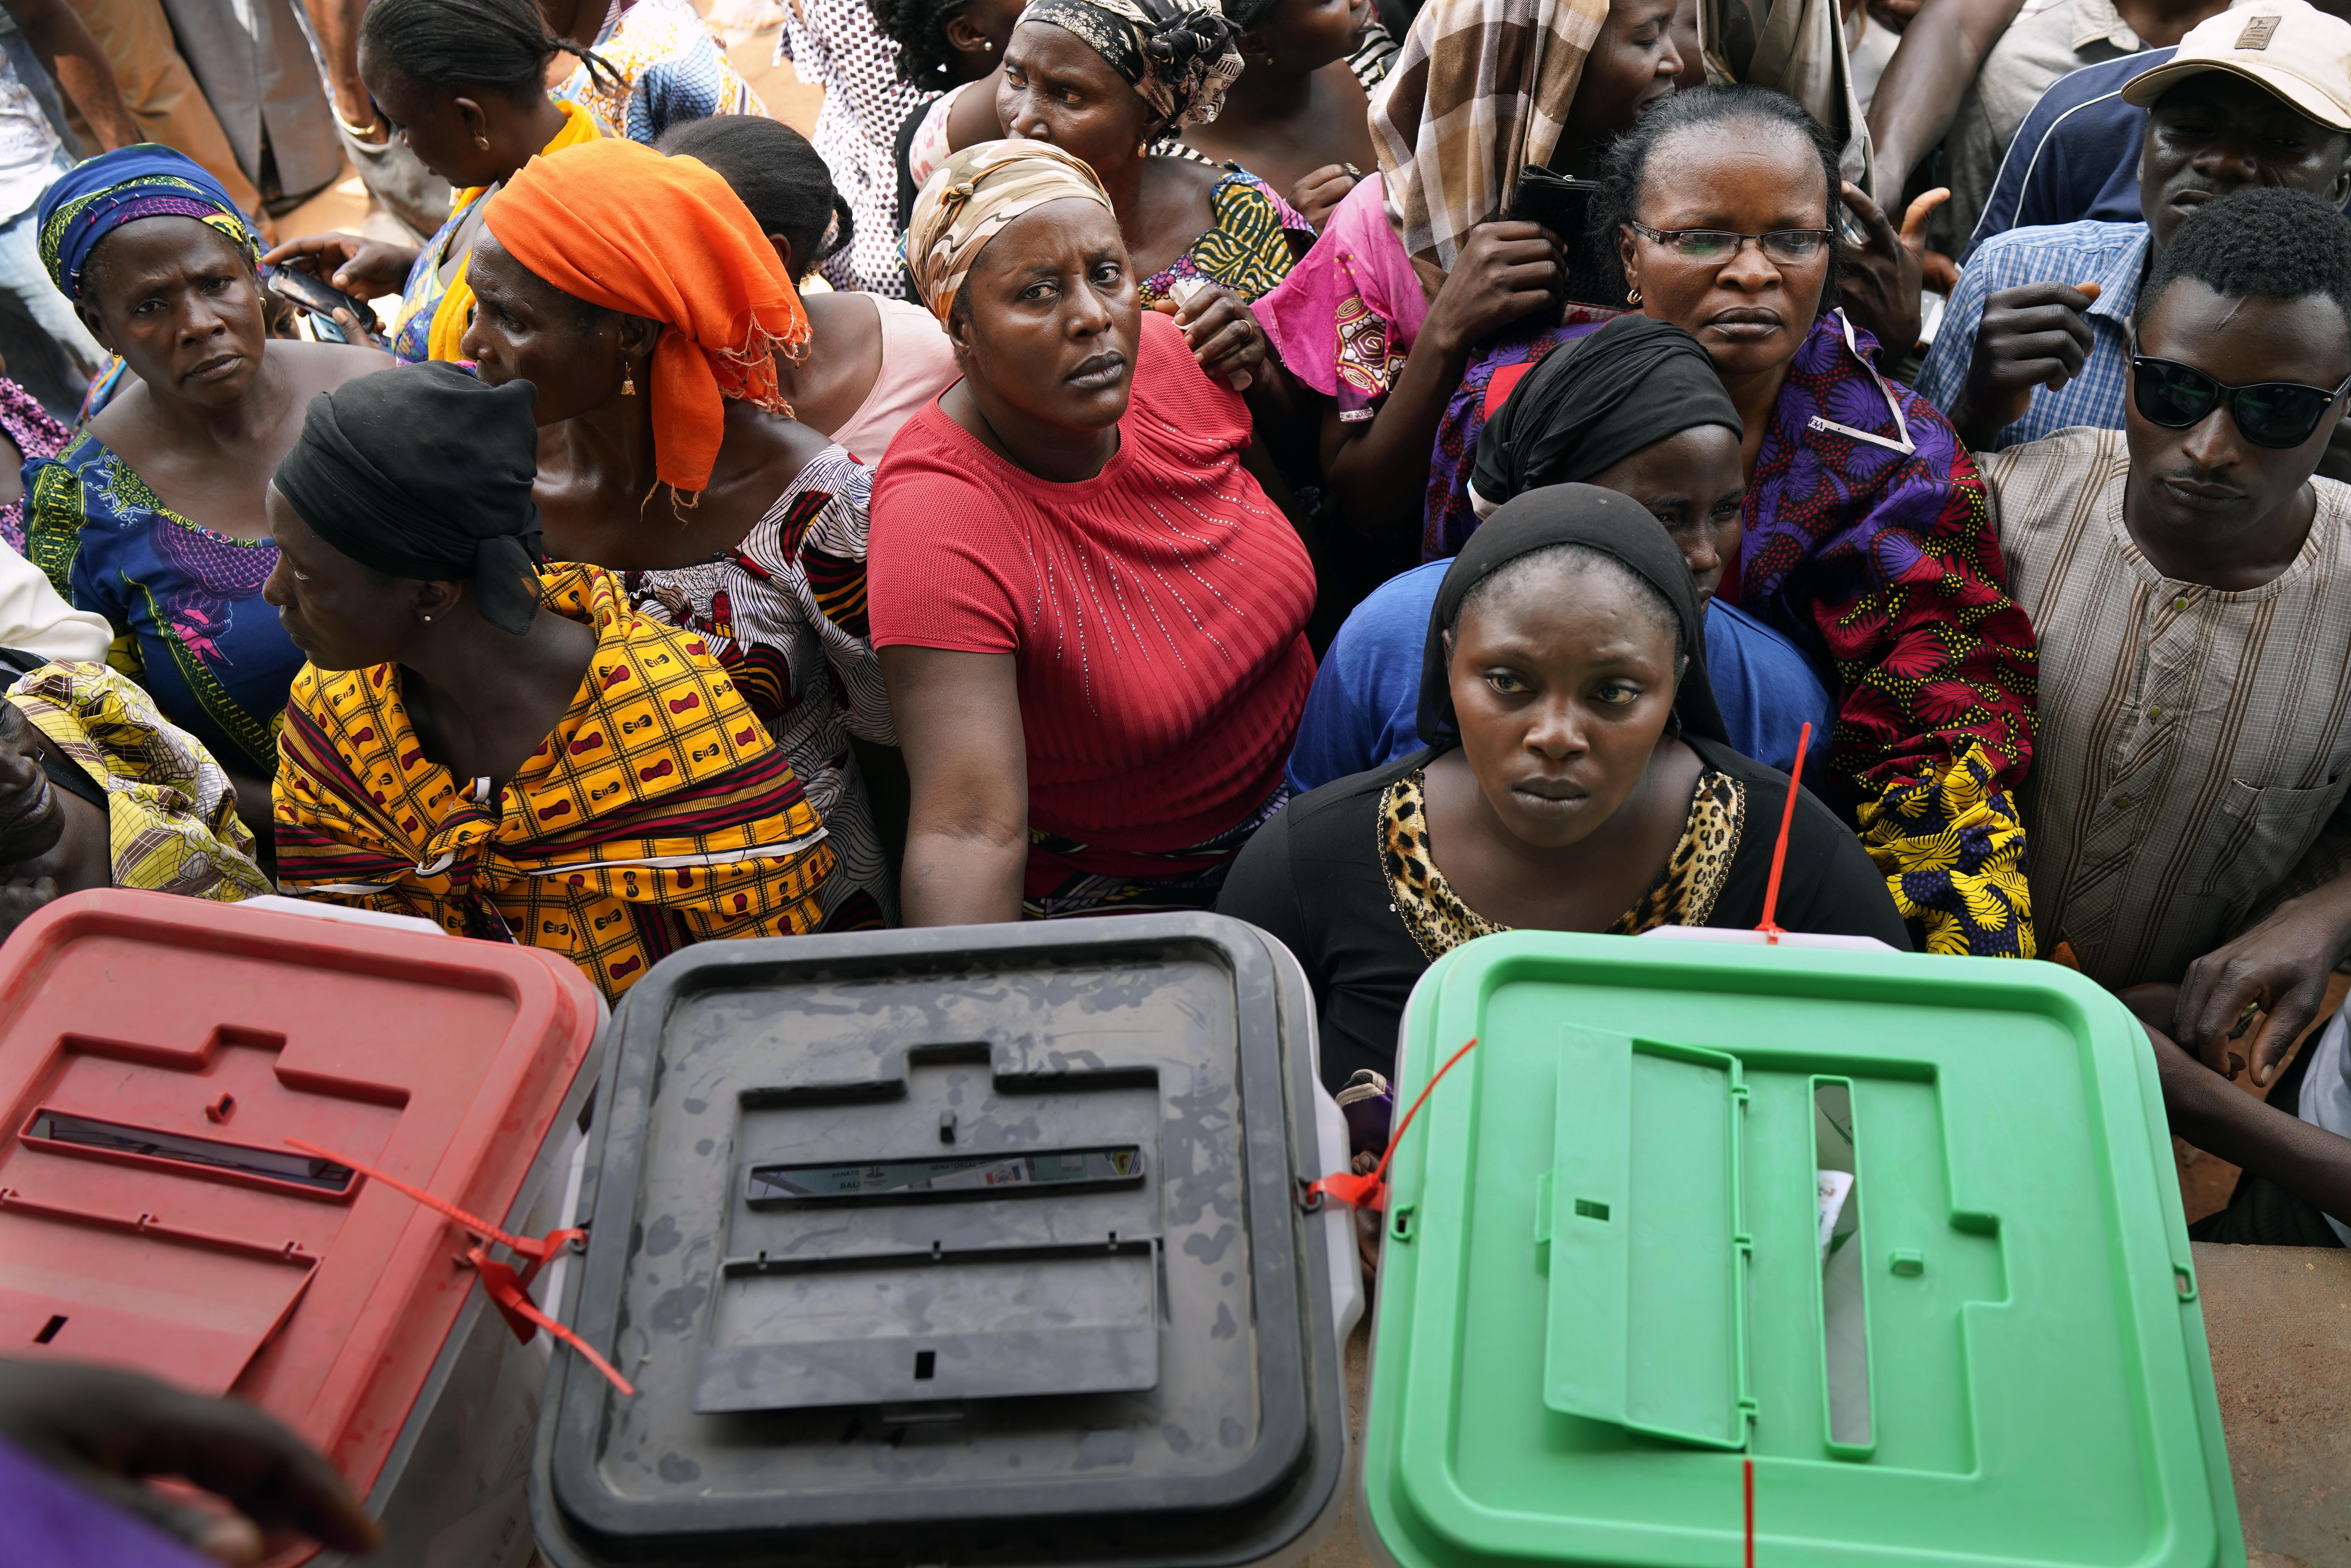 Nigerians line up to vote in Kaduna, Nigeria, Saturday Feb. 23, 2019. The election is widely seen as a tight race between President Muhammadu Buhari and his main rival, former vice president Atiku Abubakar. (AP Photo/Jerome Delay)